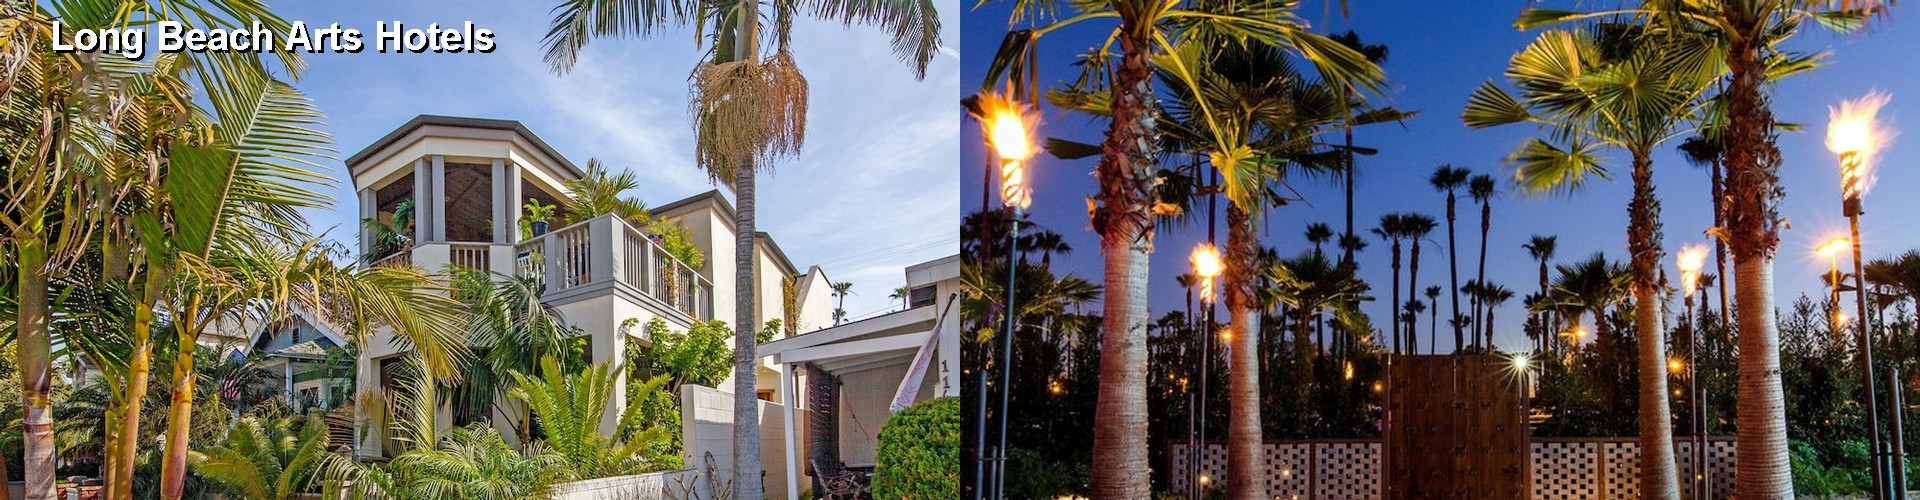 5 Best Hotels near Long Beach Arts